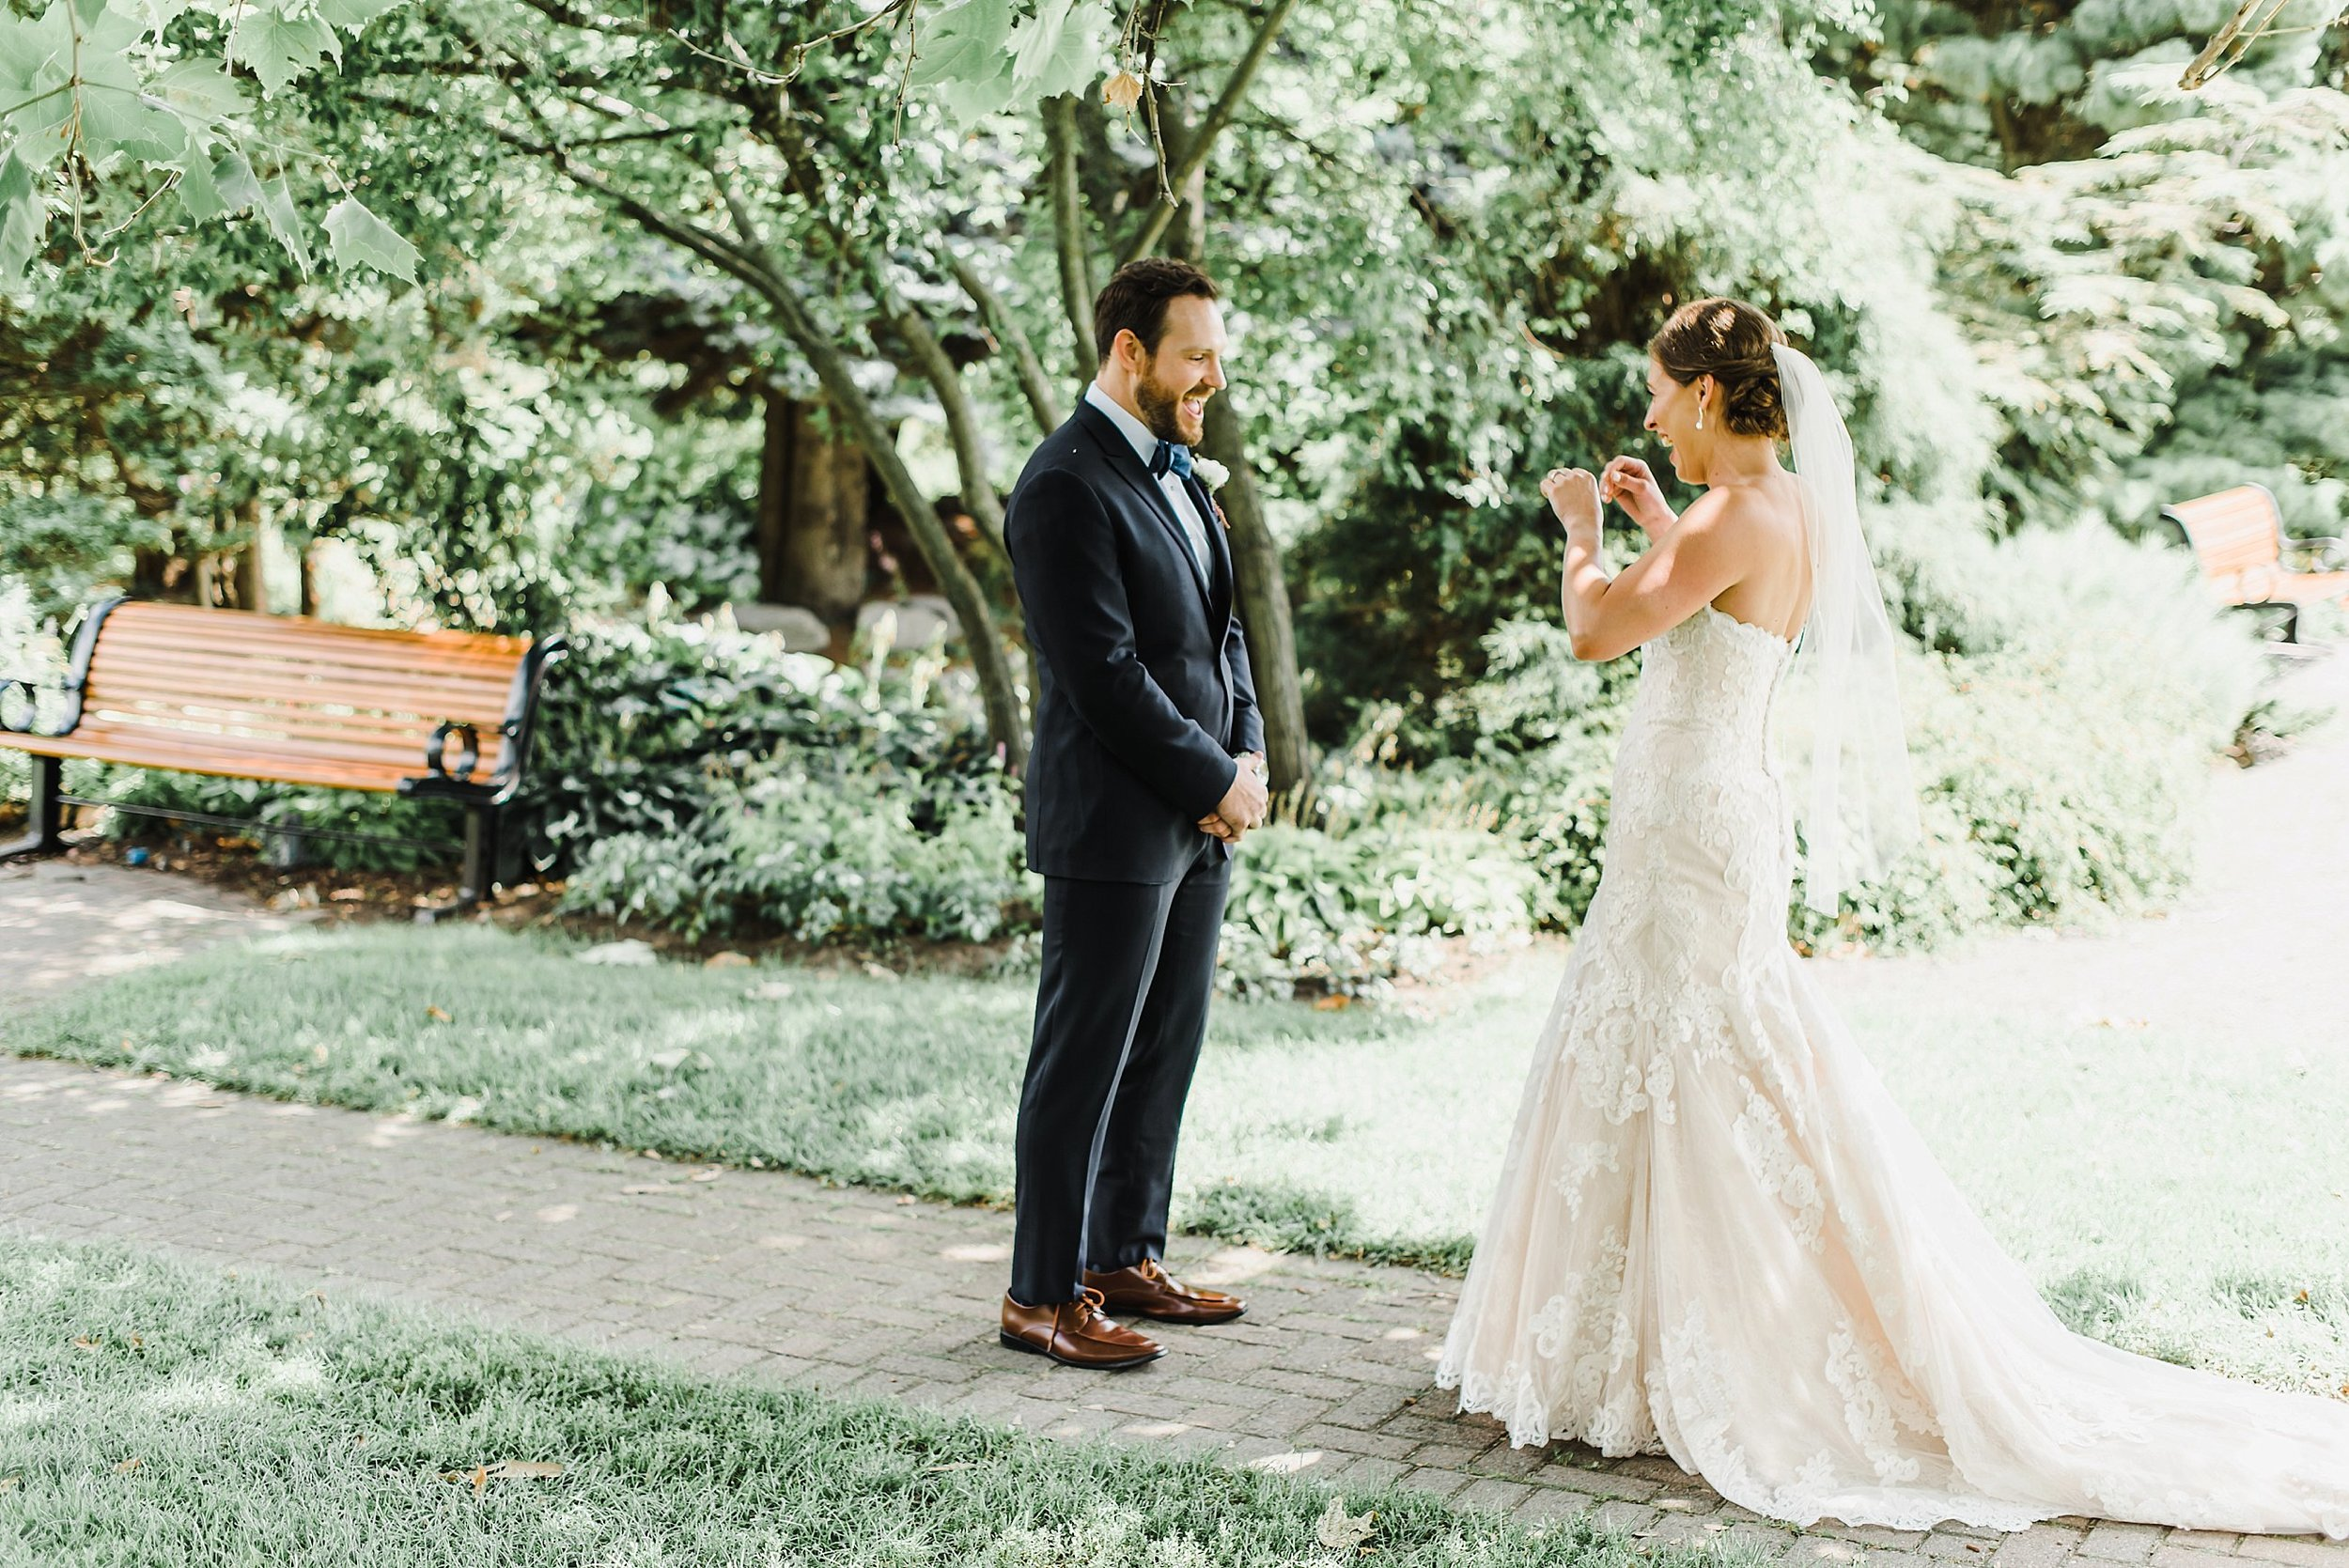 Their first look took place just down the road from their reception space at the Ornamental Gardens.  To say it was an emotional moment is an understatement!